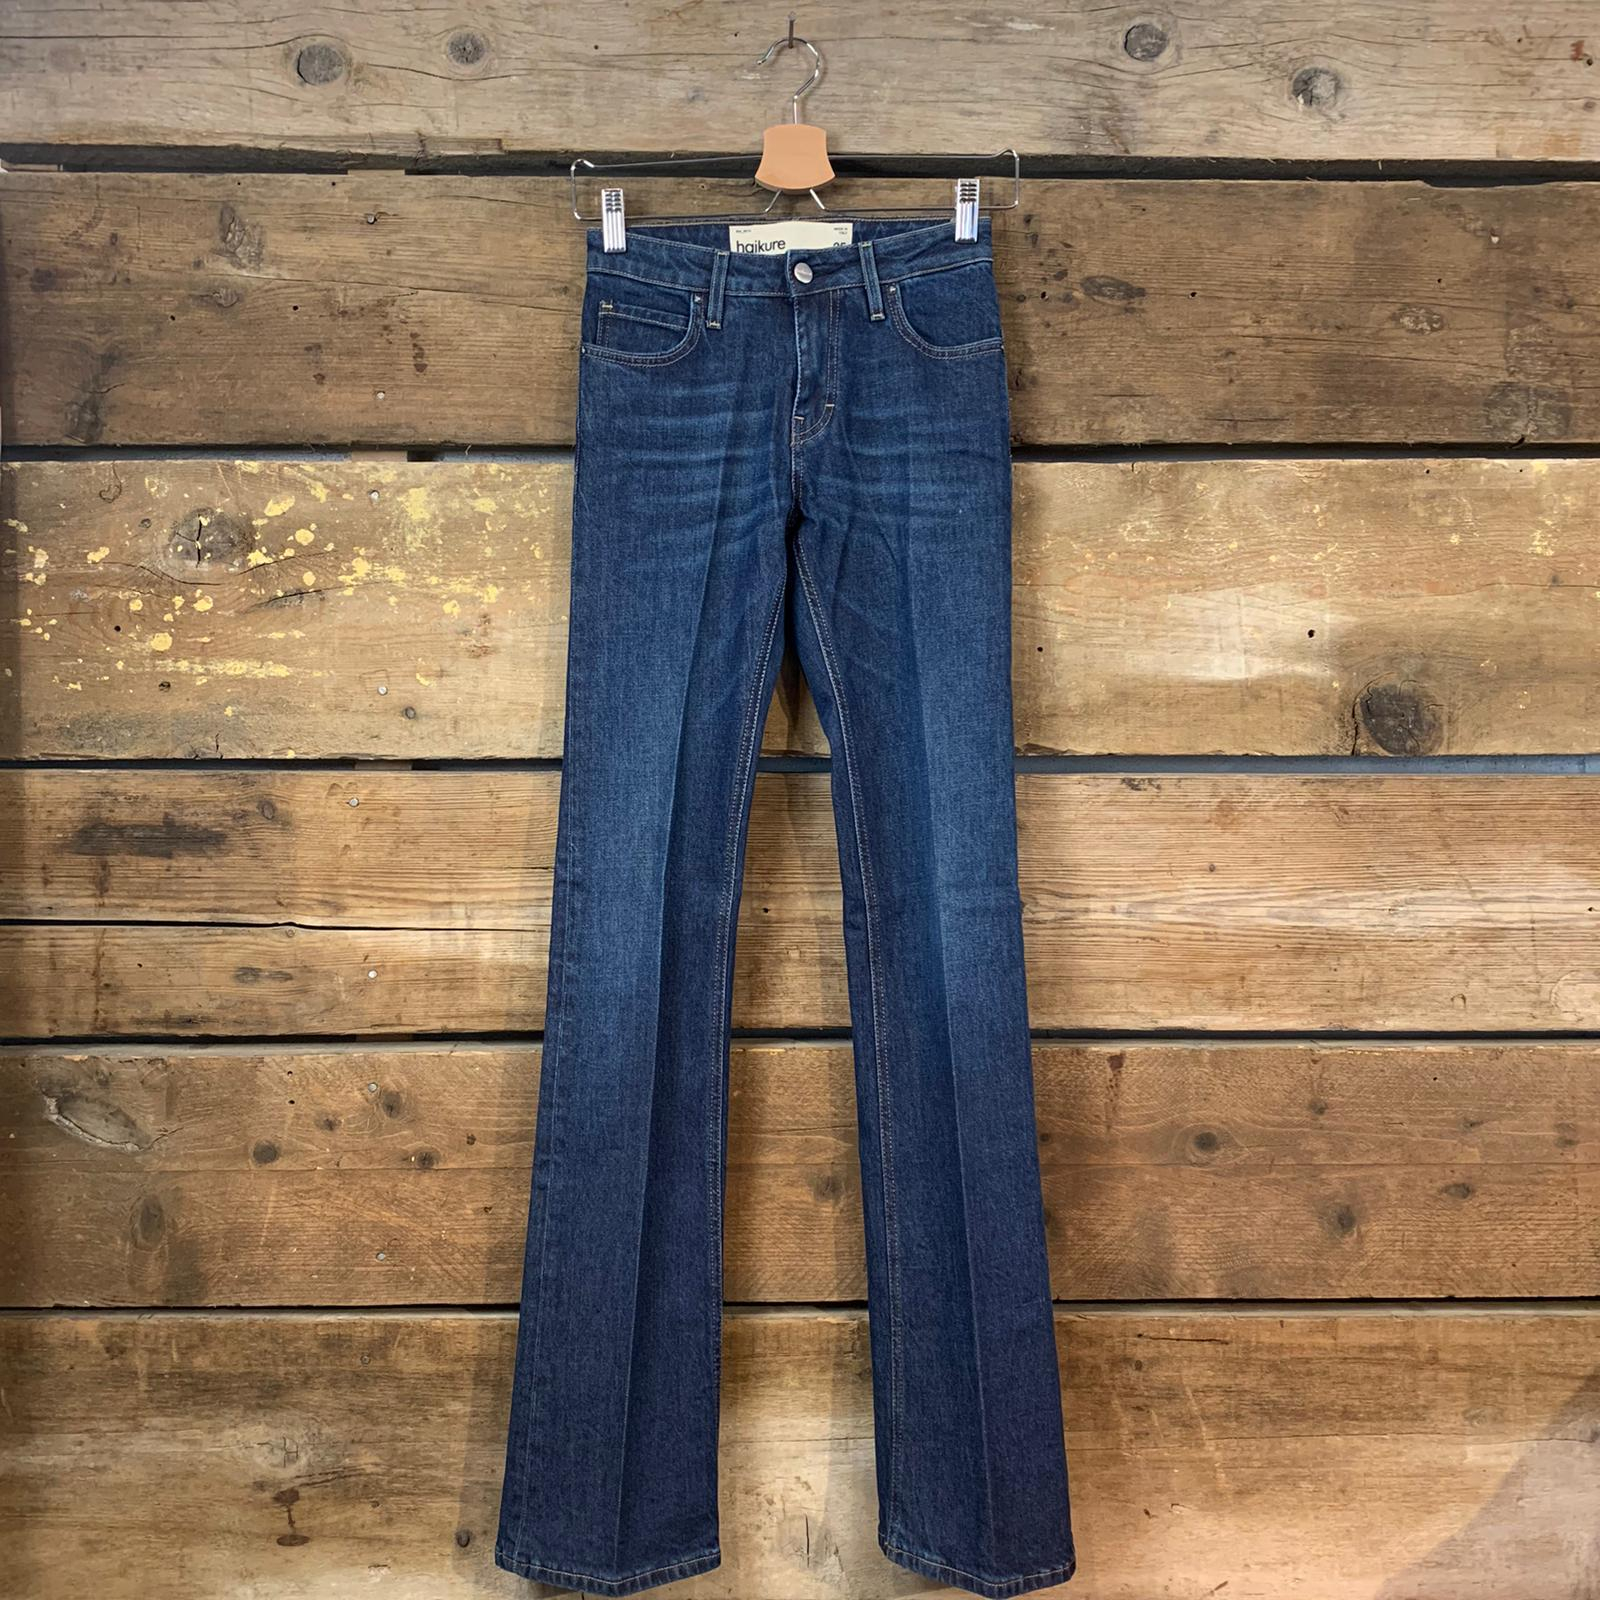 Jeans Haikure Mauna Loa Denim Blu Scuro (Boot Cut Fit)